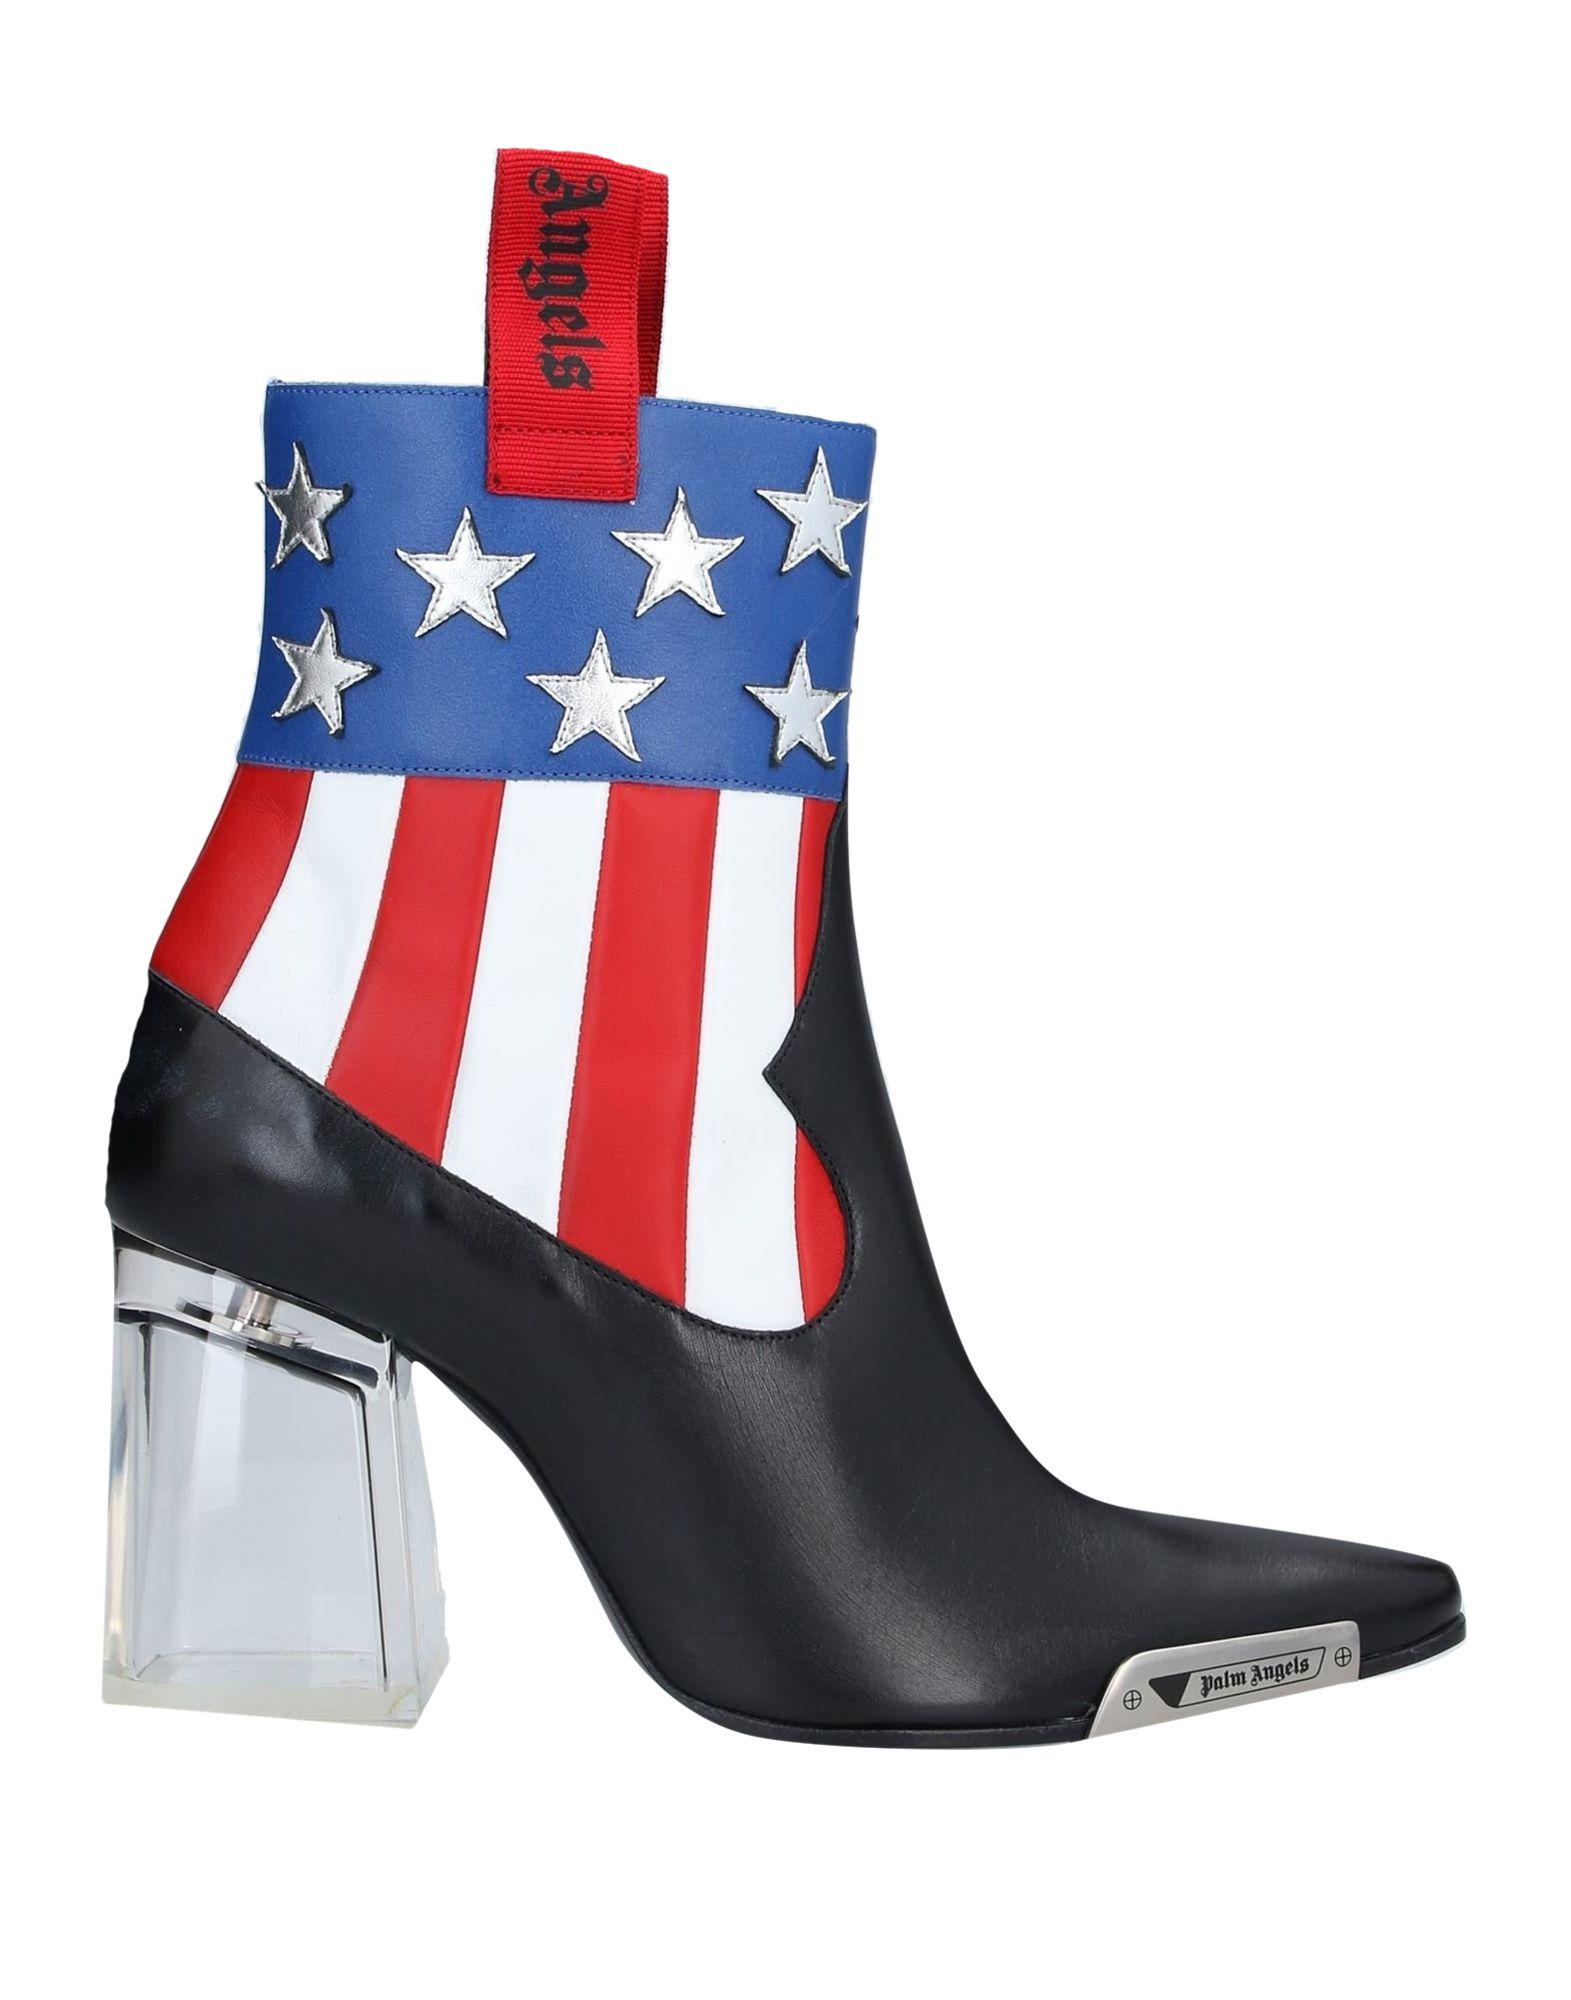 PALM ANGELS Ankle boots. contrasting applications, logo, multicolor pattern, zip, narrow toeline, square heel, leather lining, leather sole, contains non-textile parts of animal origin. Soft Leather